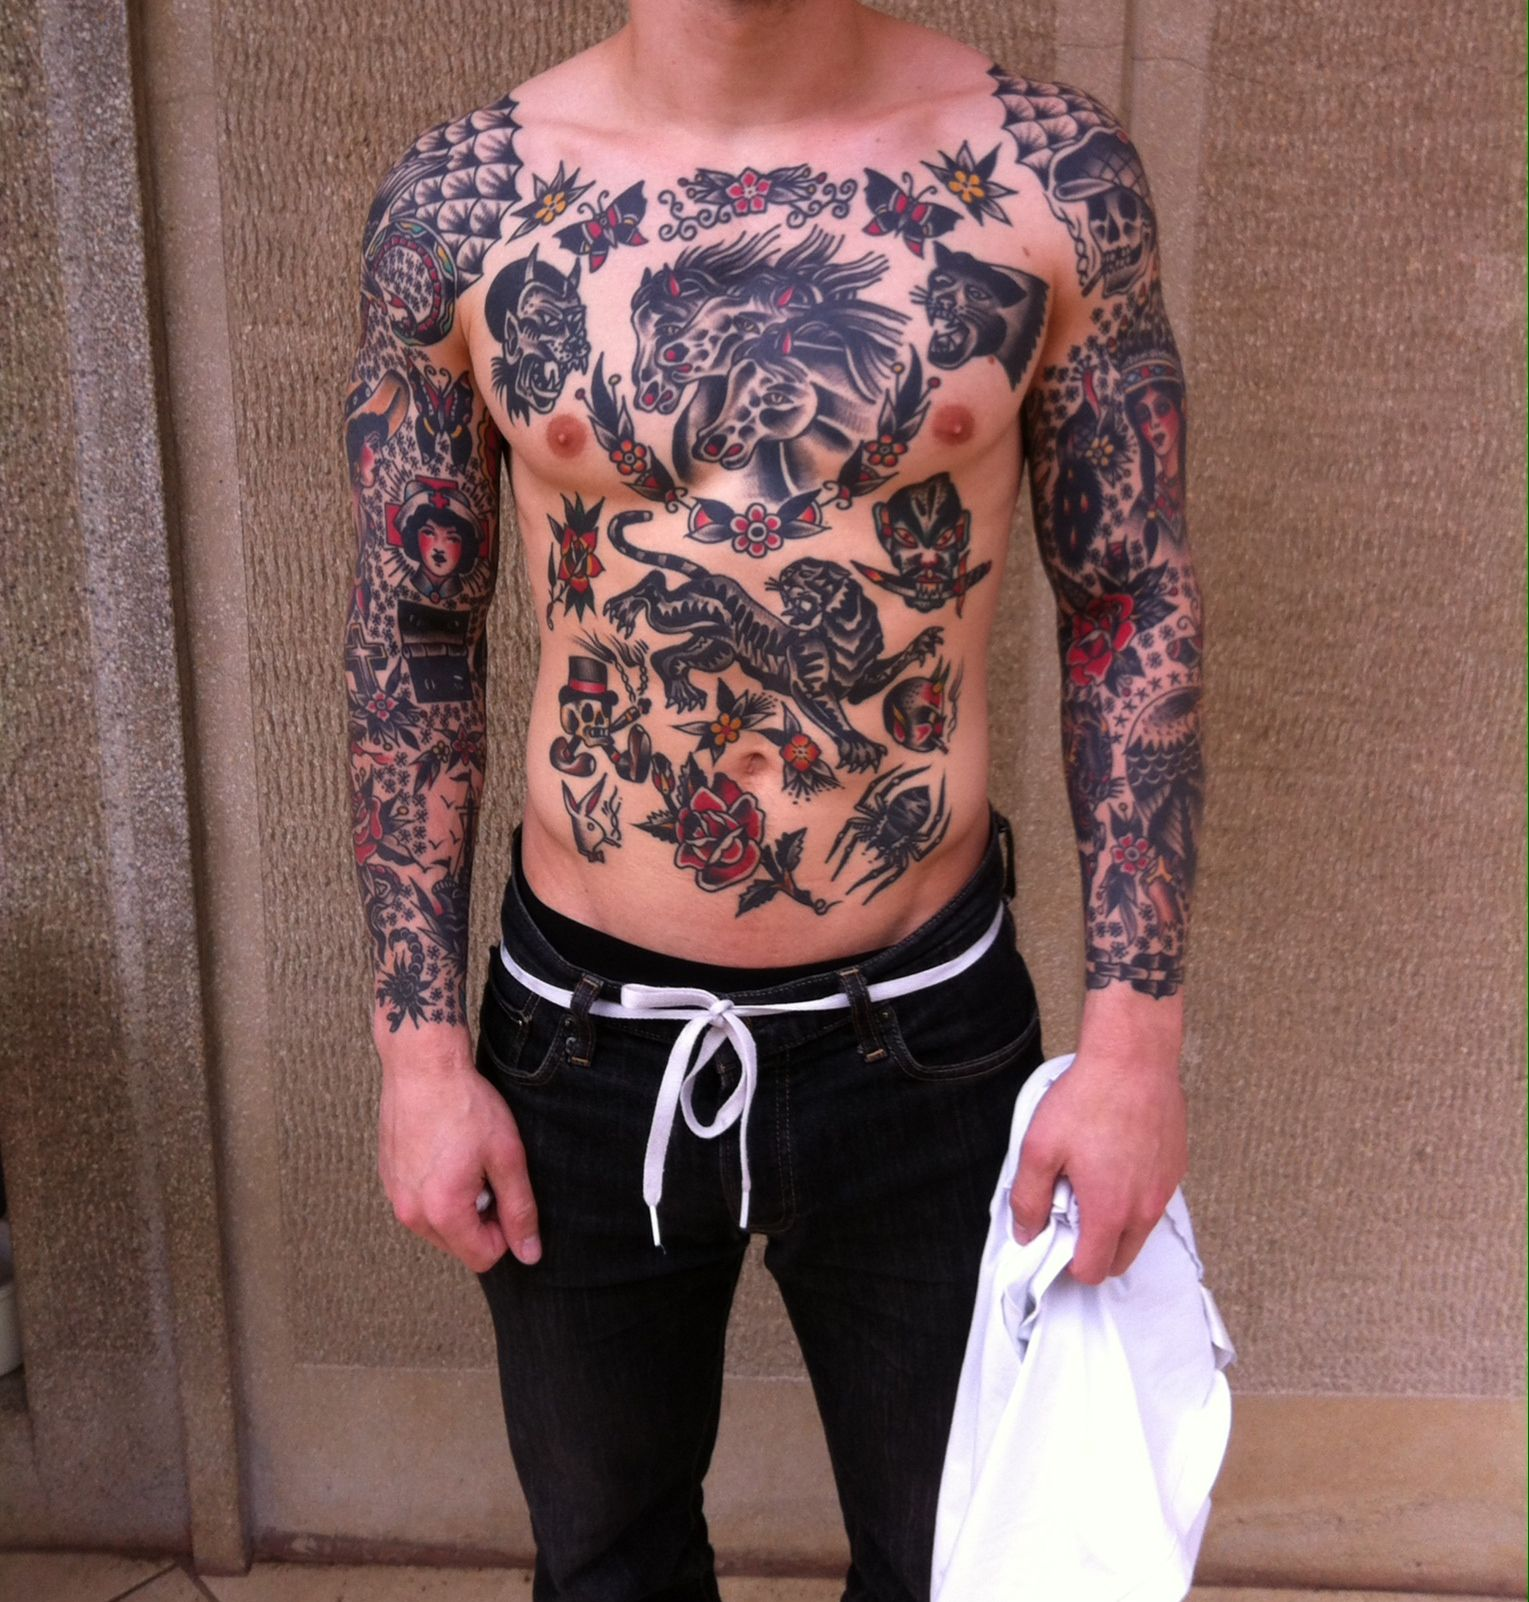 Tattoostraditional On Pinterest: Large Traditional Back Tattoo - Google Search